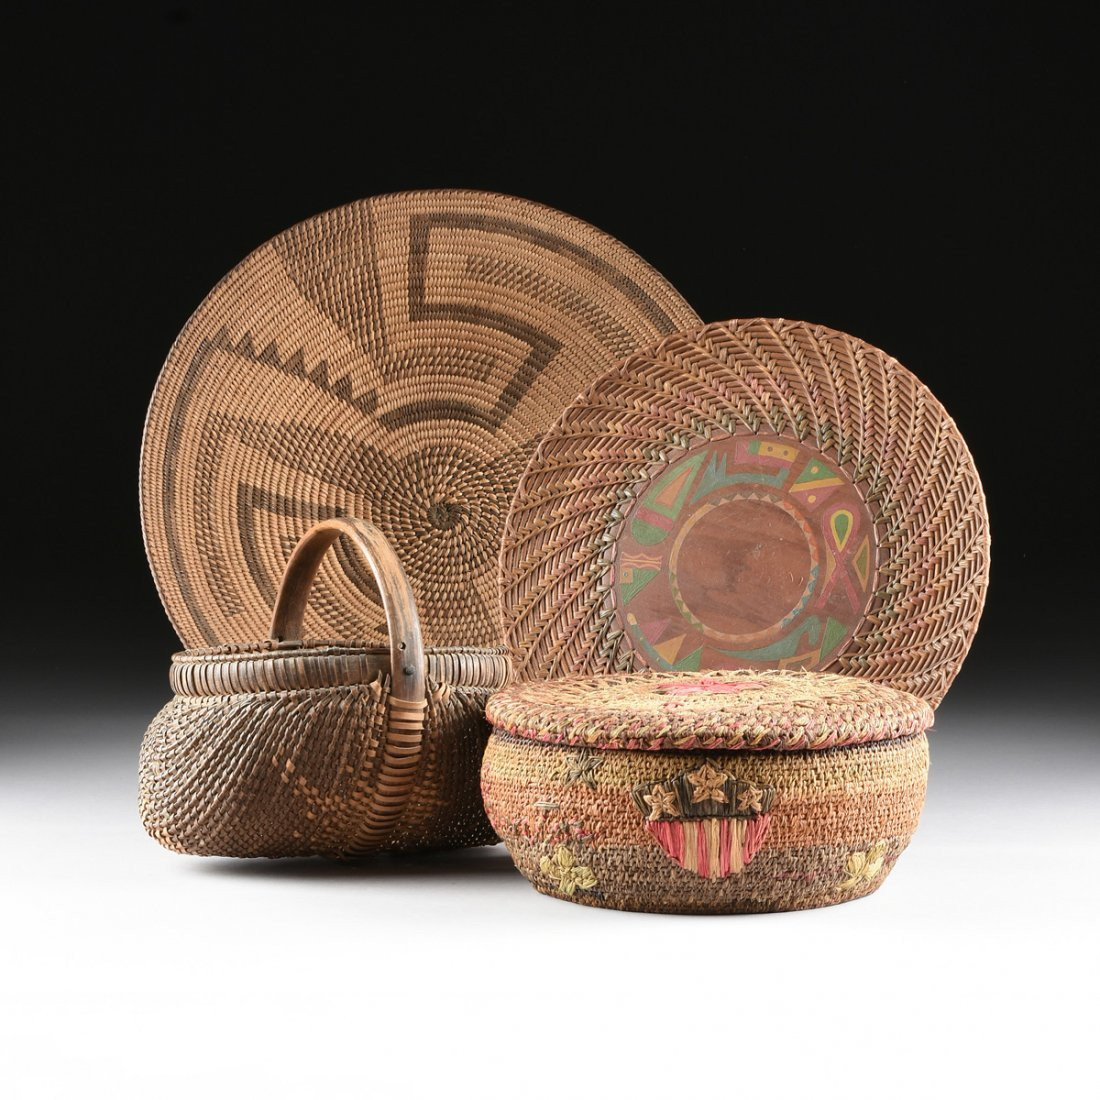 A GROUP OF FOUR VARIOUS NATIVE AMERICAN WOVEN BASKETRY